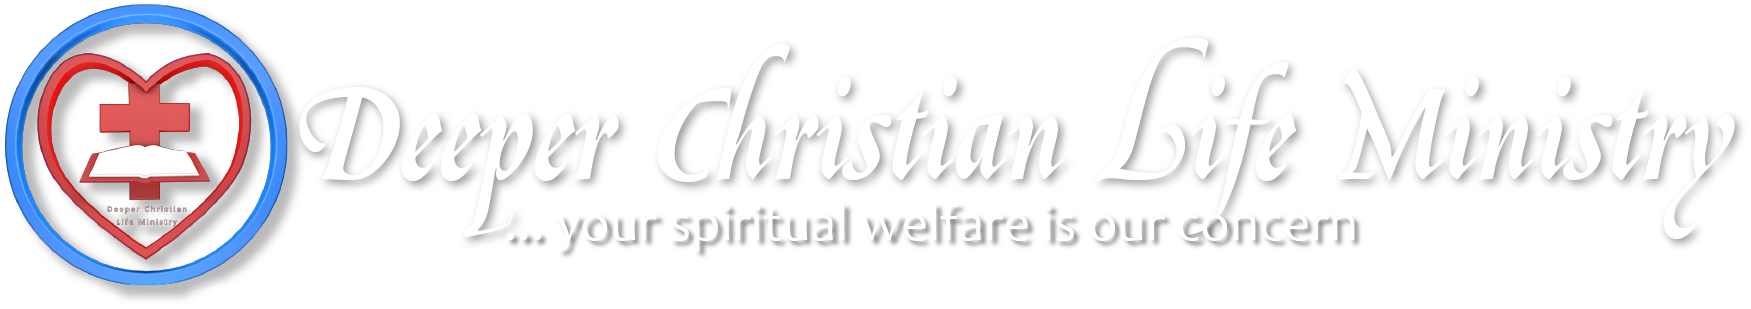 Deeper Christian Life Ministry Fiji Islands